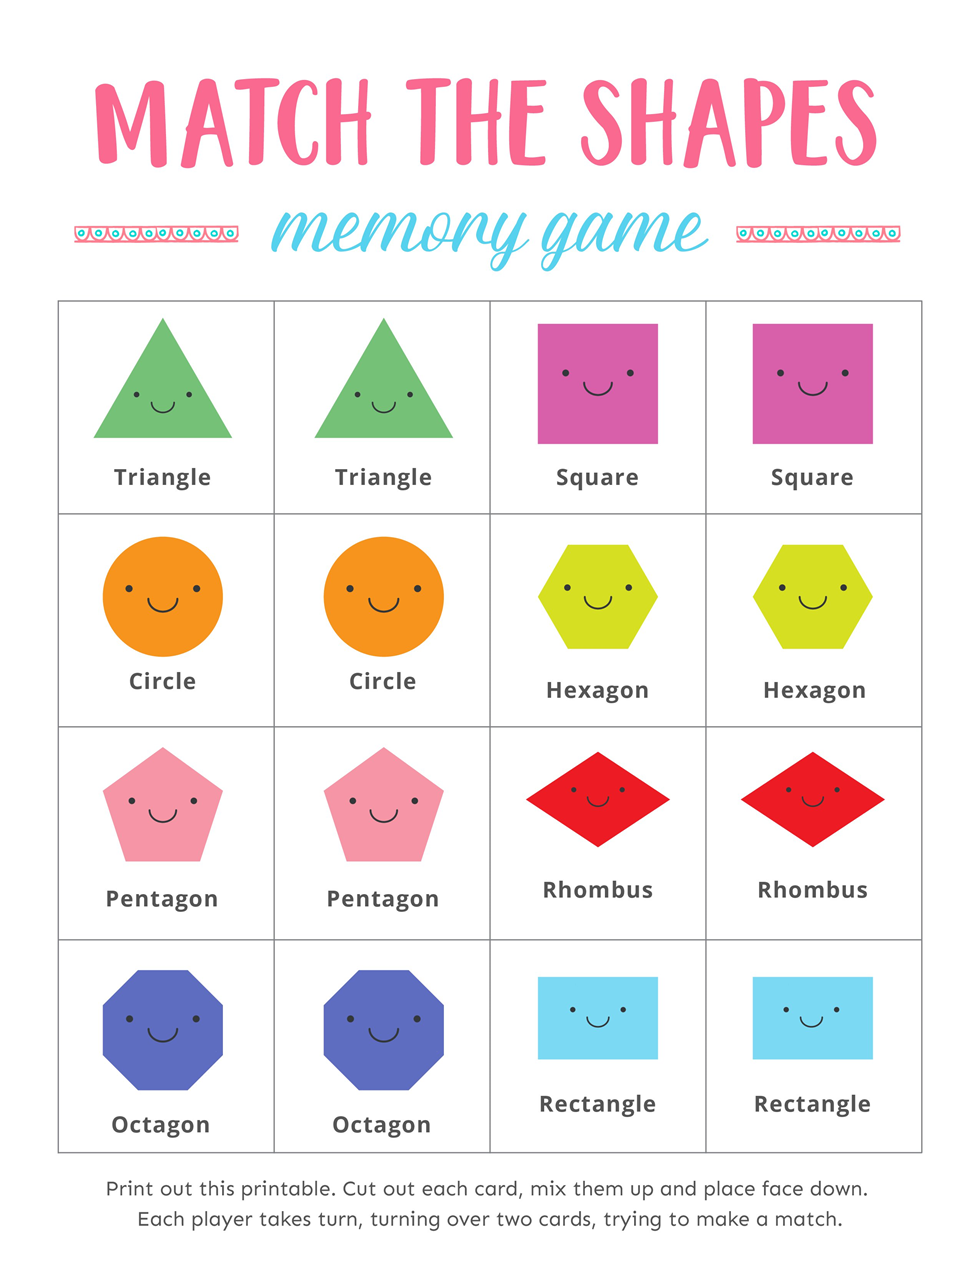 Free Printable Match The Shapes Memory Games For Kids Shape Games For Kids Memory Games For Kids Memory Games [ 1268 x 980 Pixel ]